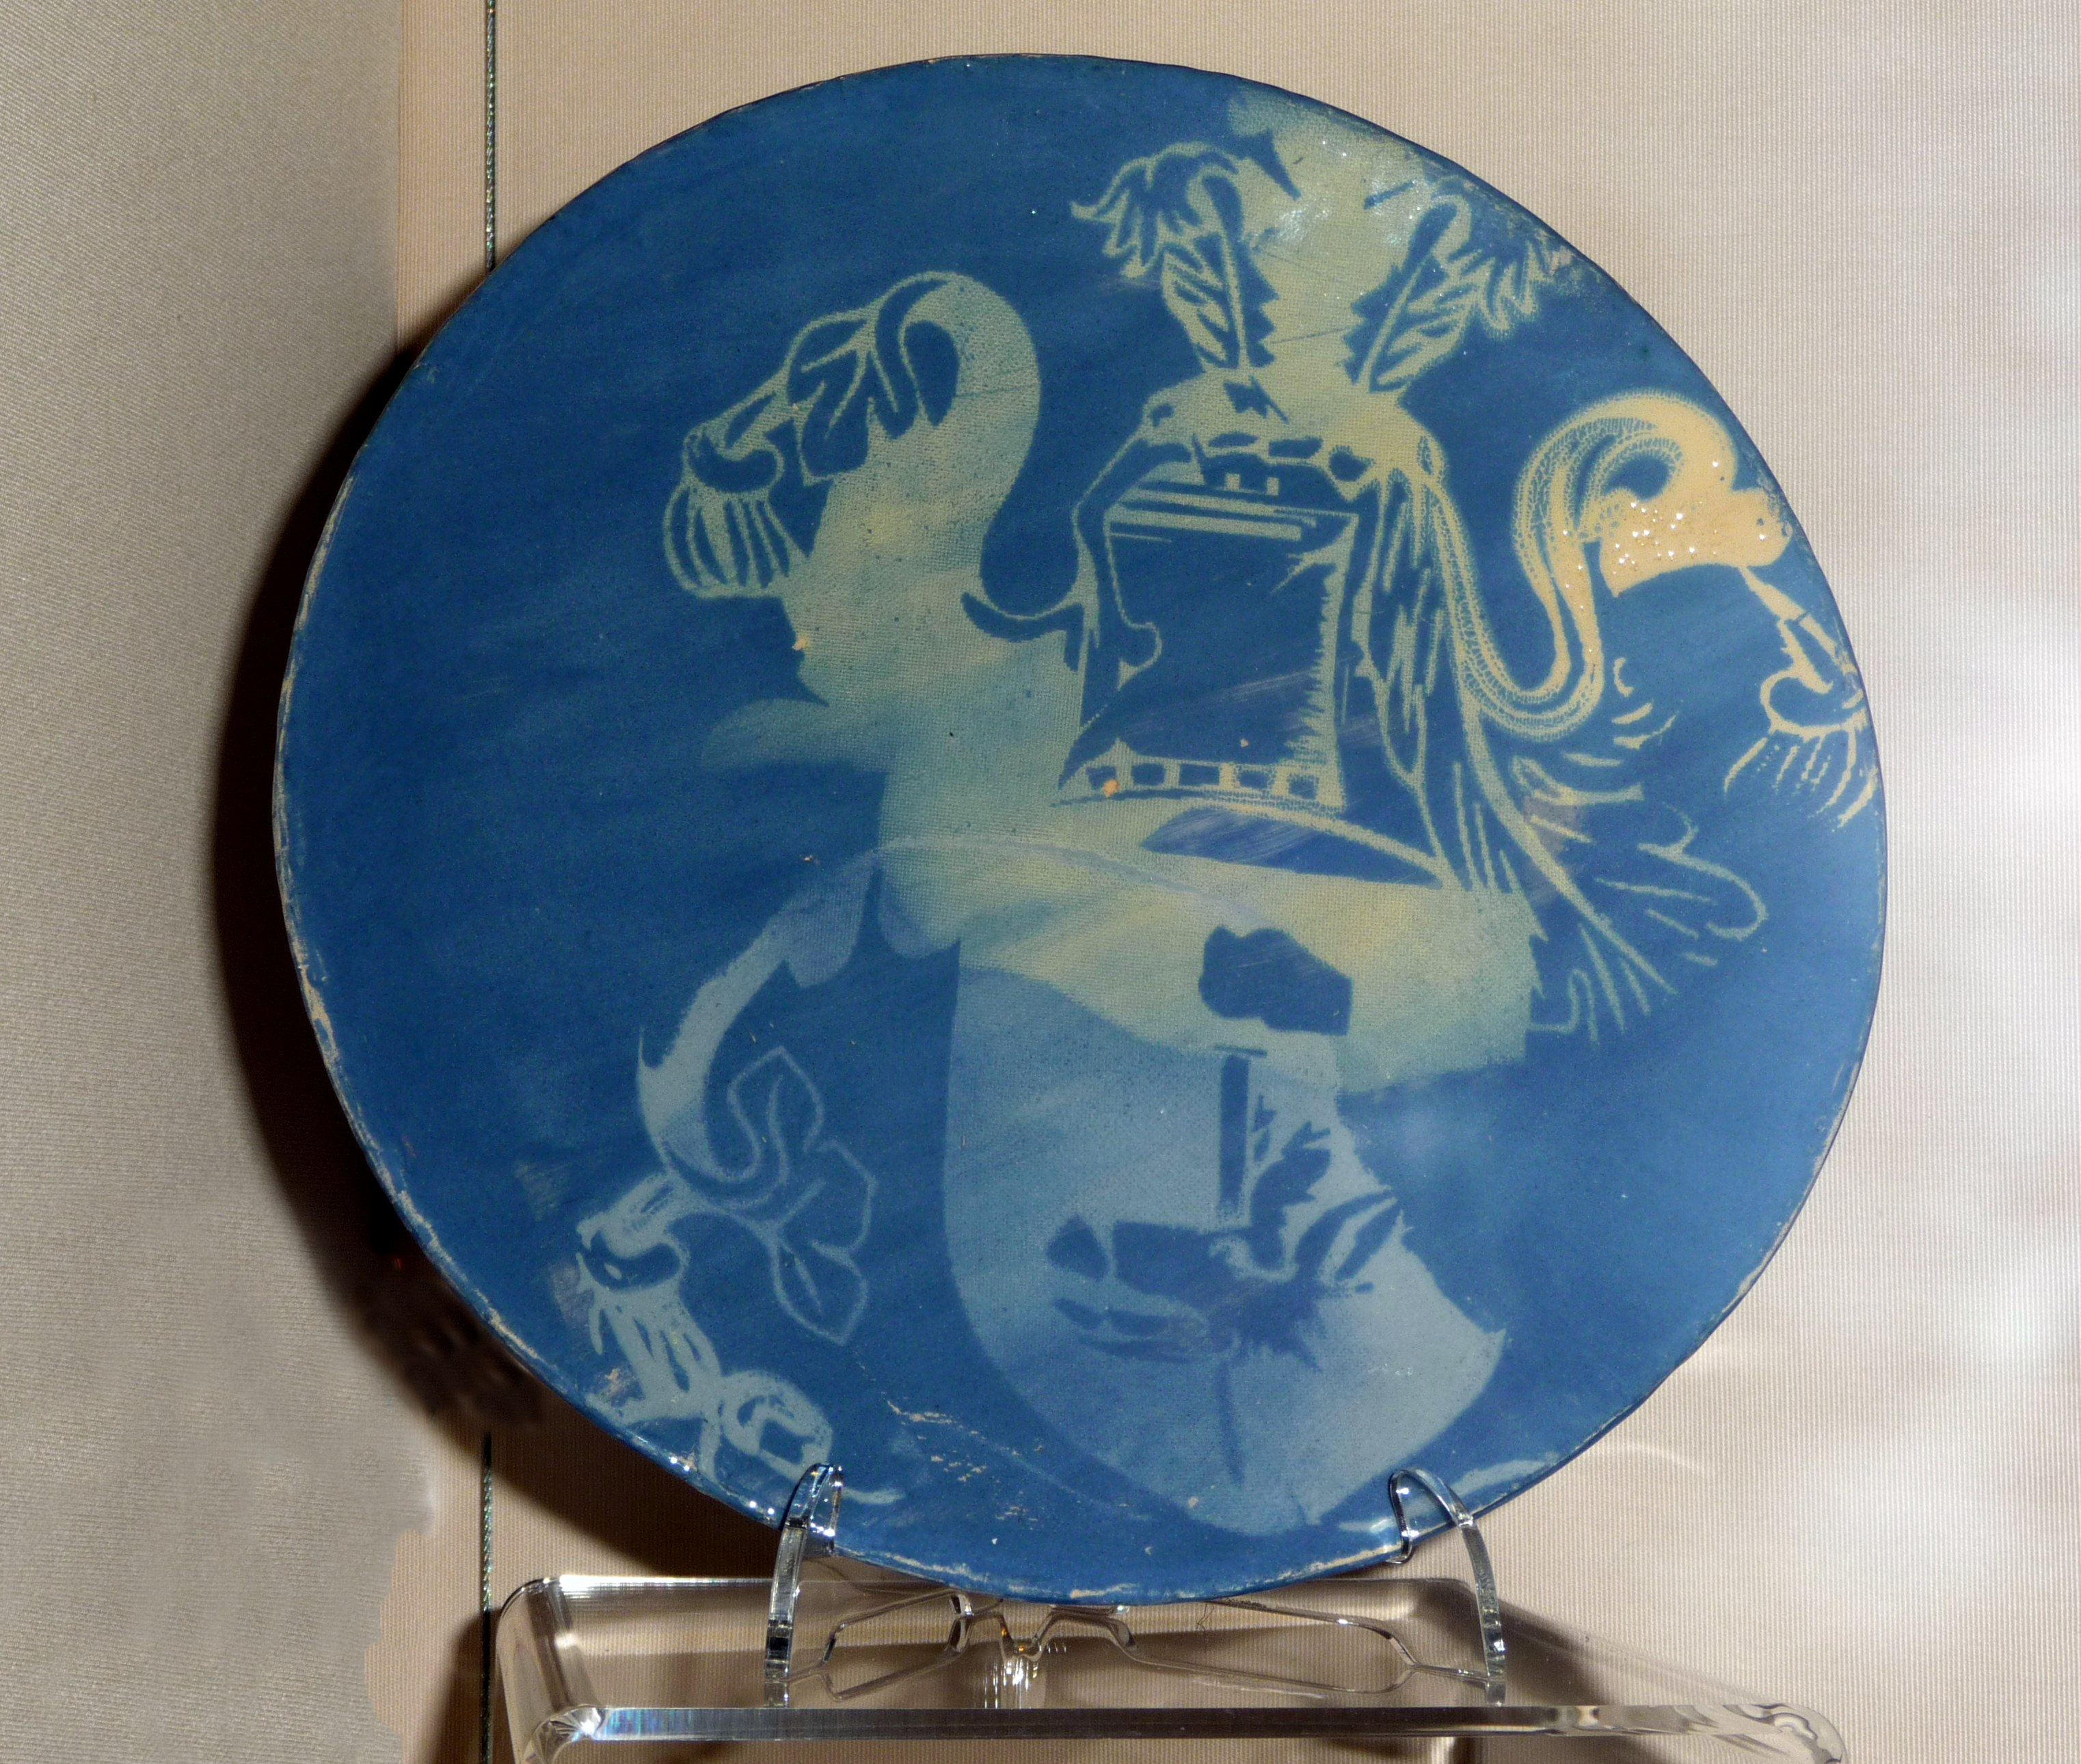 PLATE by Charlotte Fahey, 2014, earthenware